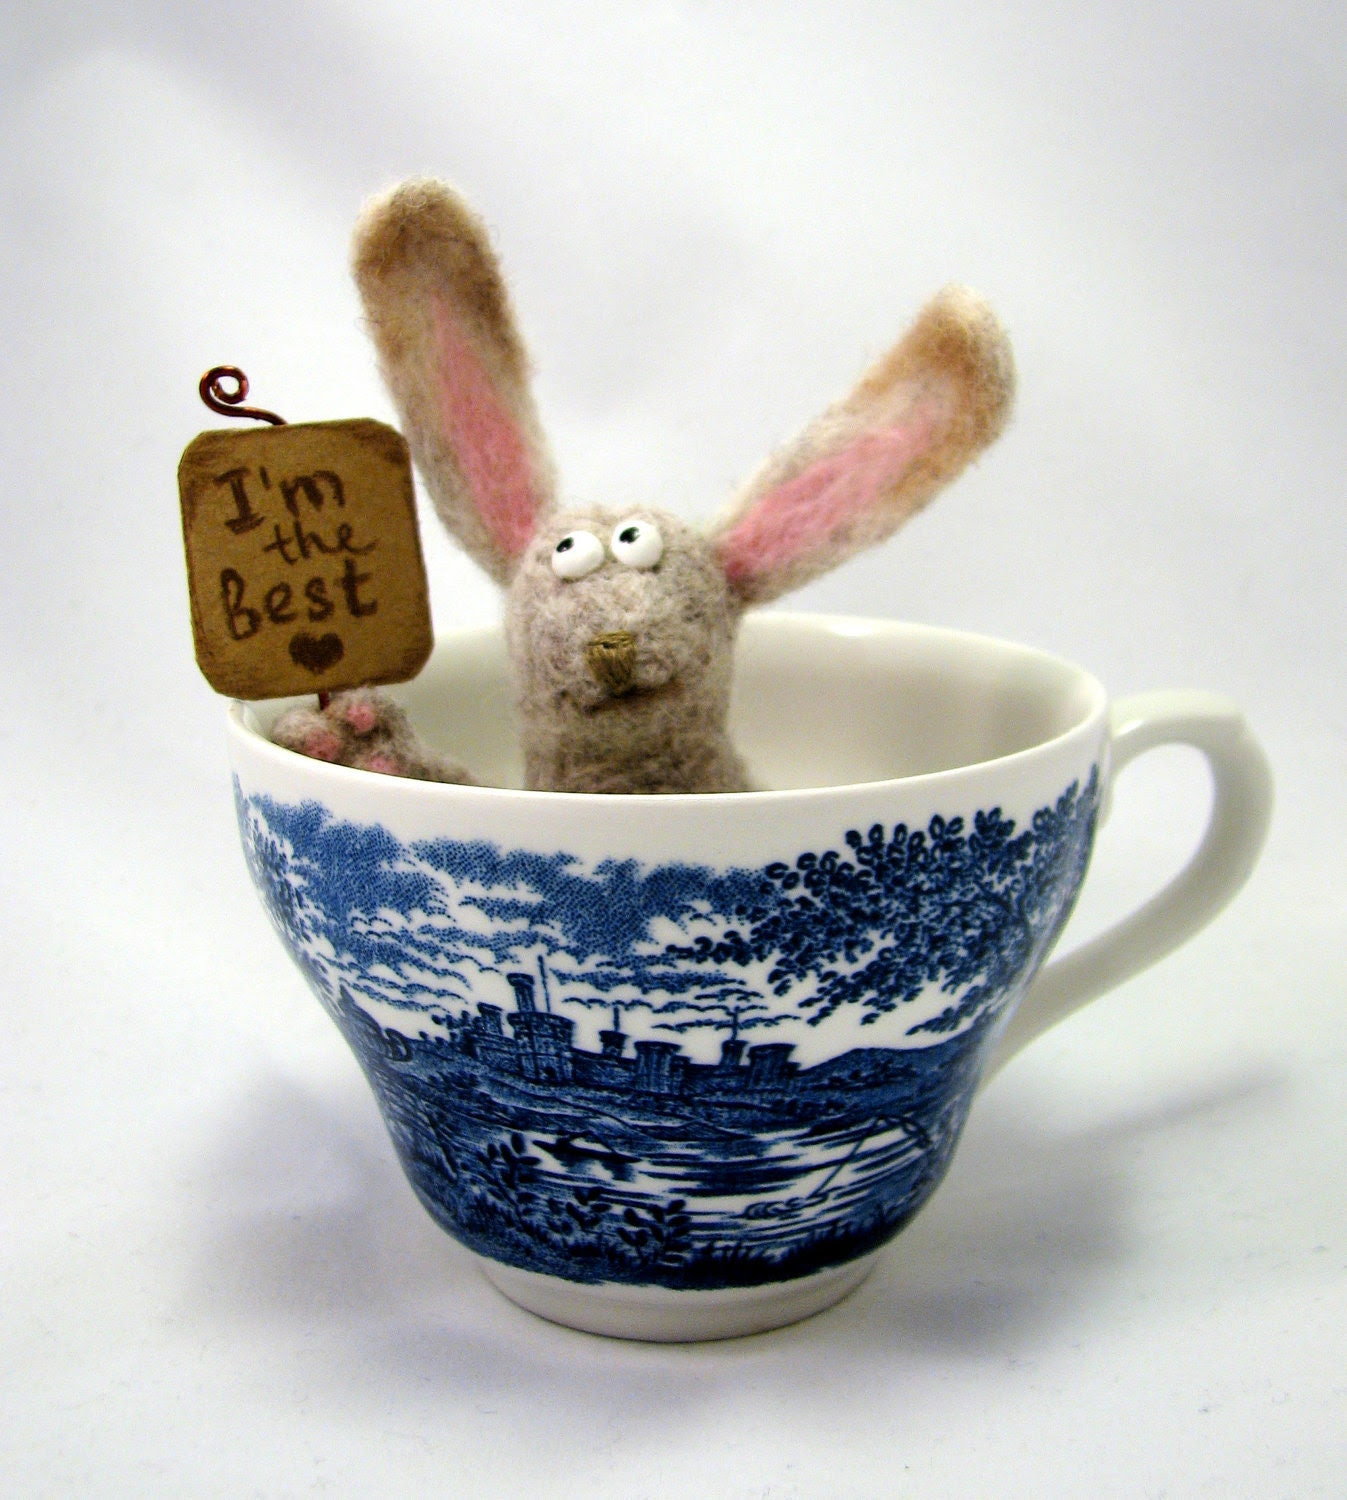 Needle Felted - Bunny, I'm the best in a gift box, Easter Bunny - Soft Sculpture, OOAK